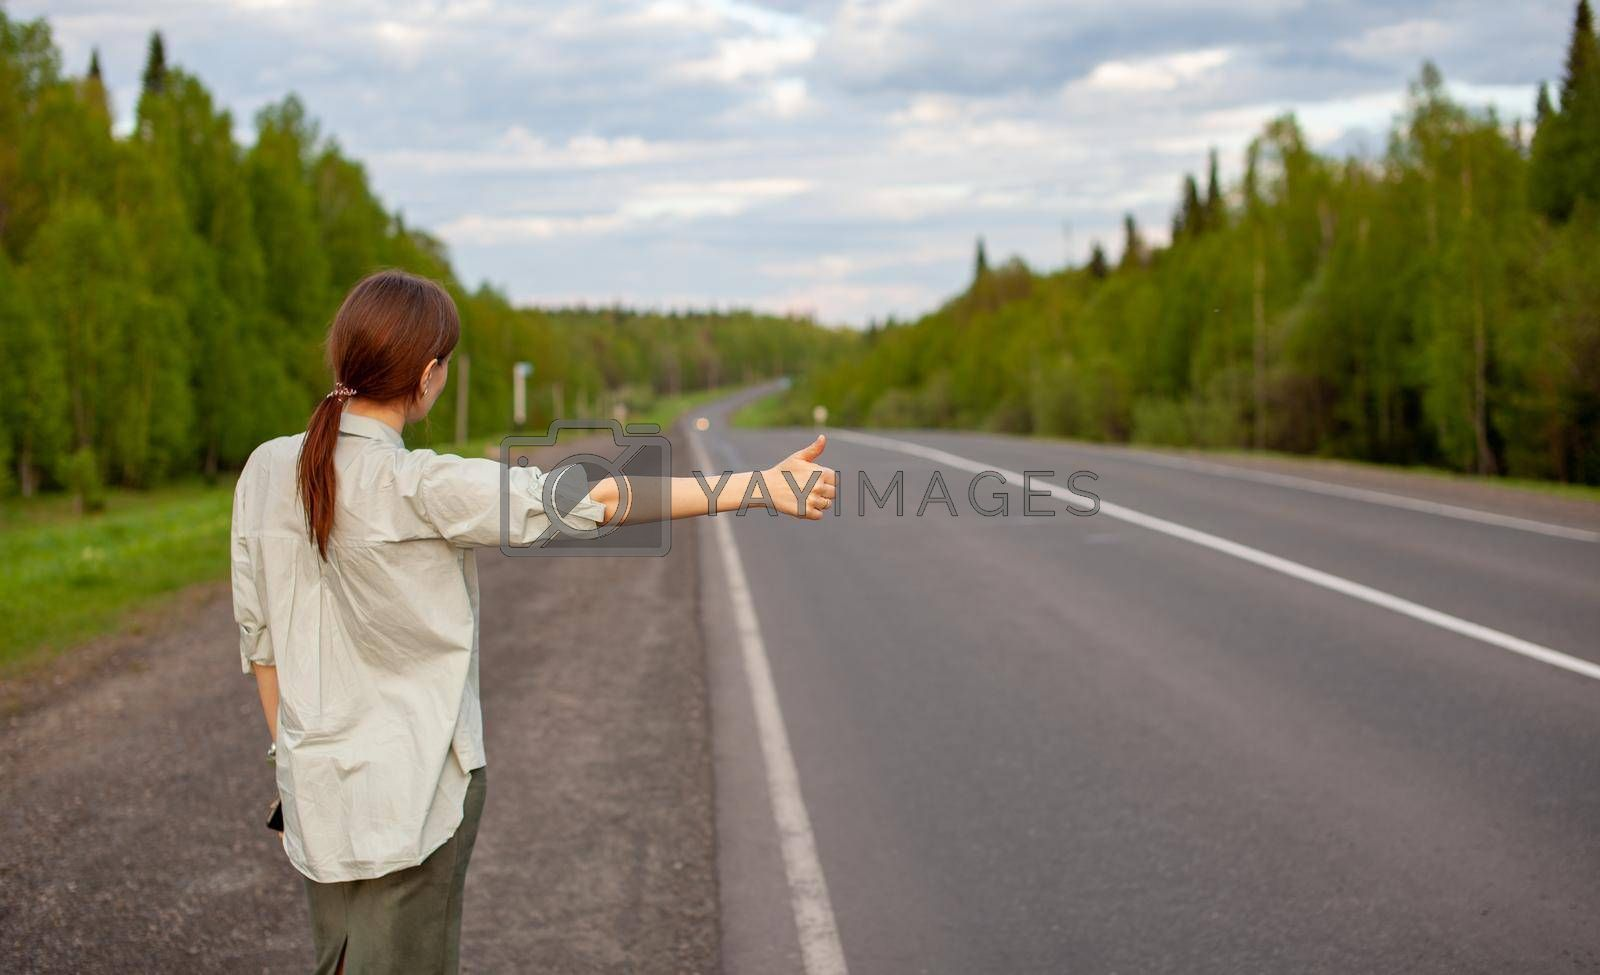 The girl stops the car on the highway with her hand. Stylish woman on the road stops the car go on a journey. A road in the middle of the forest.